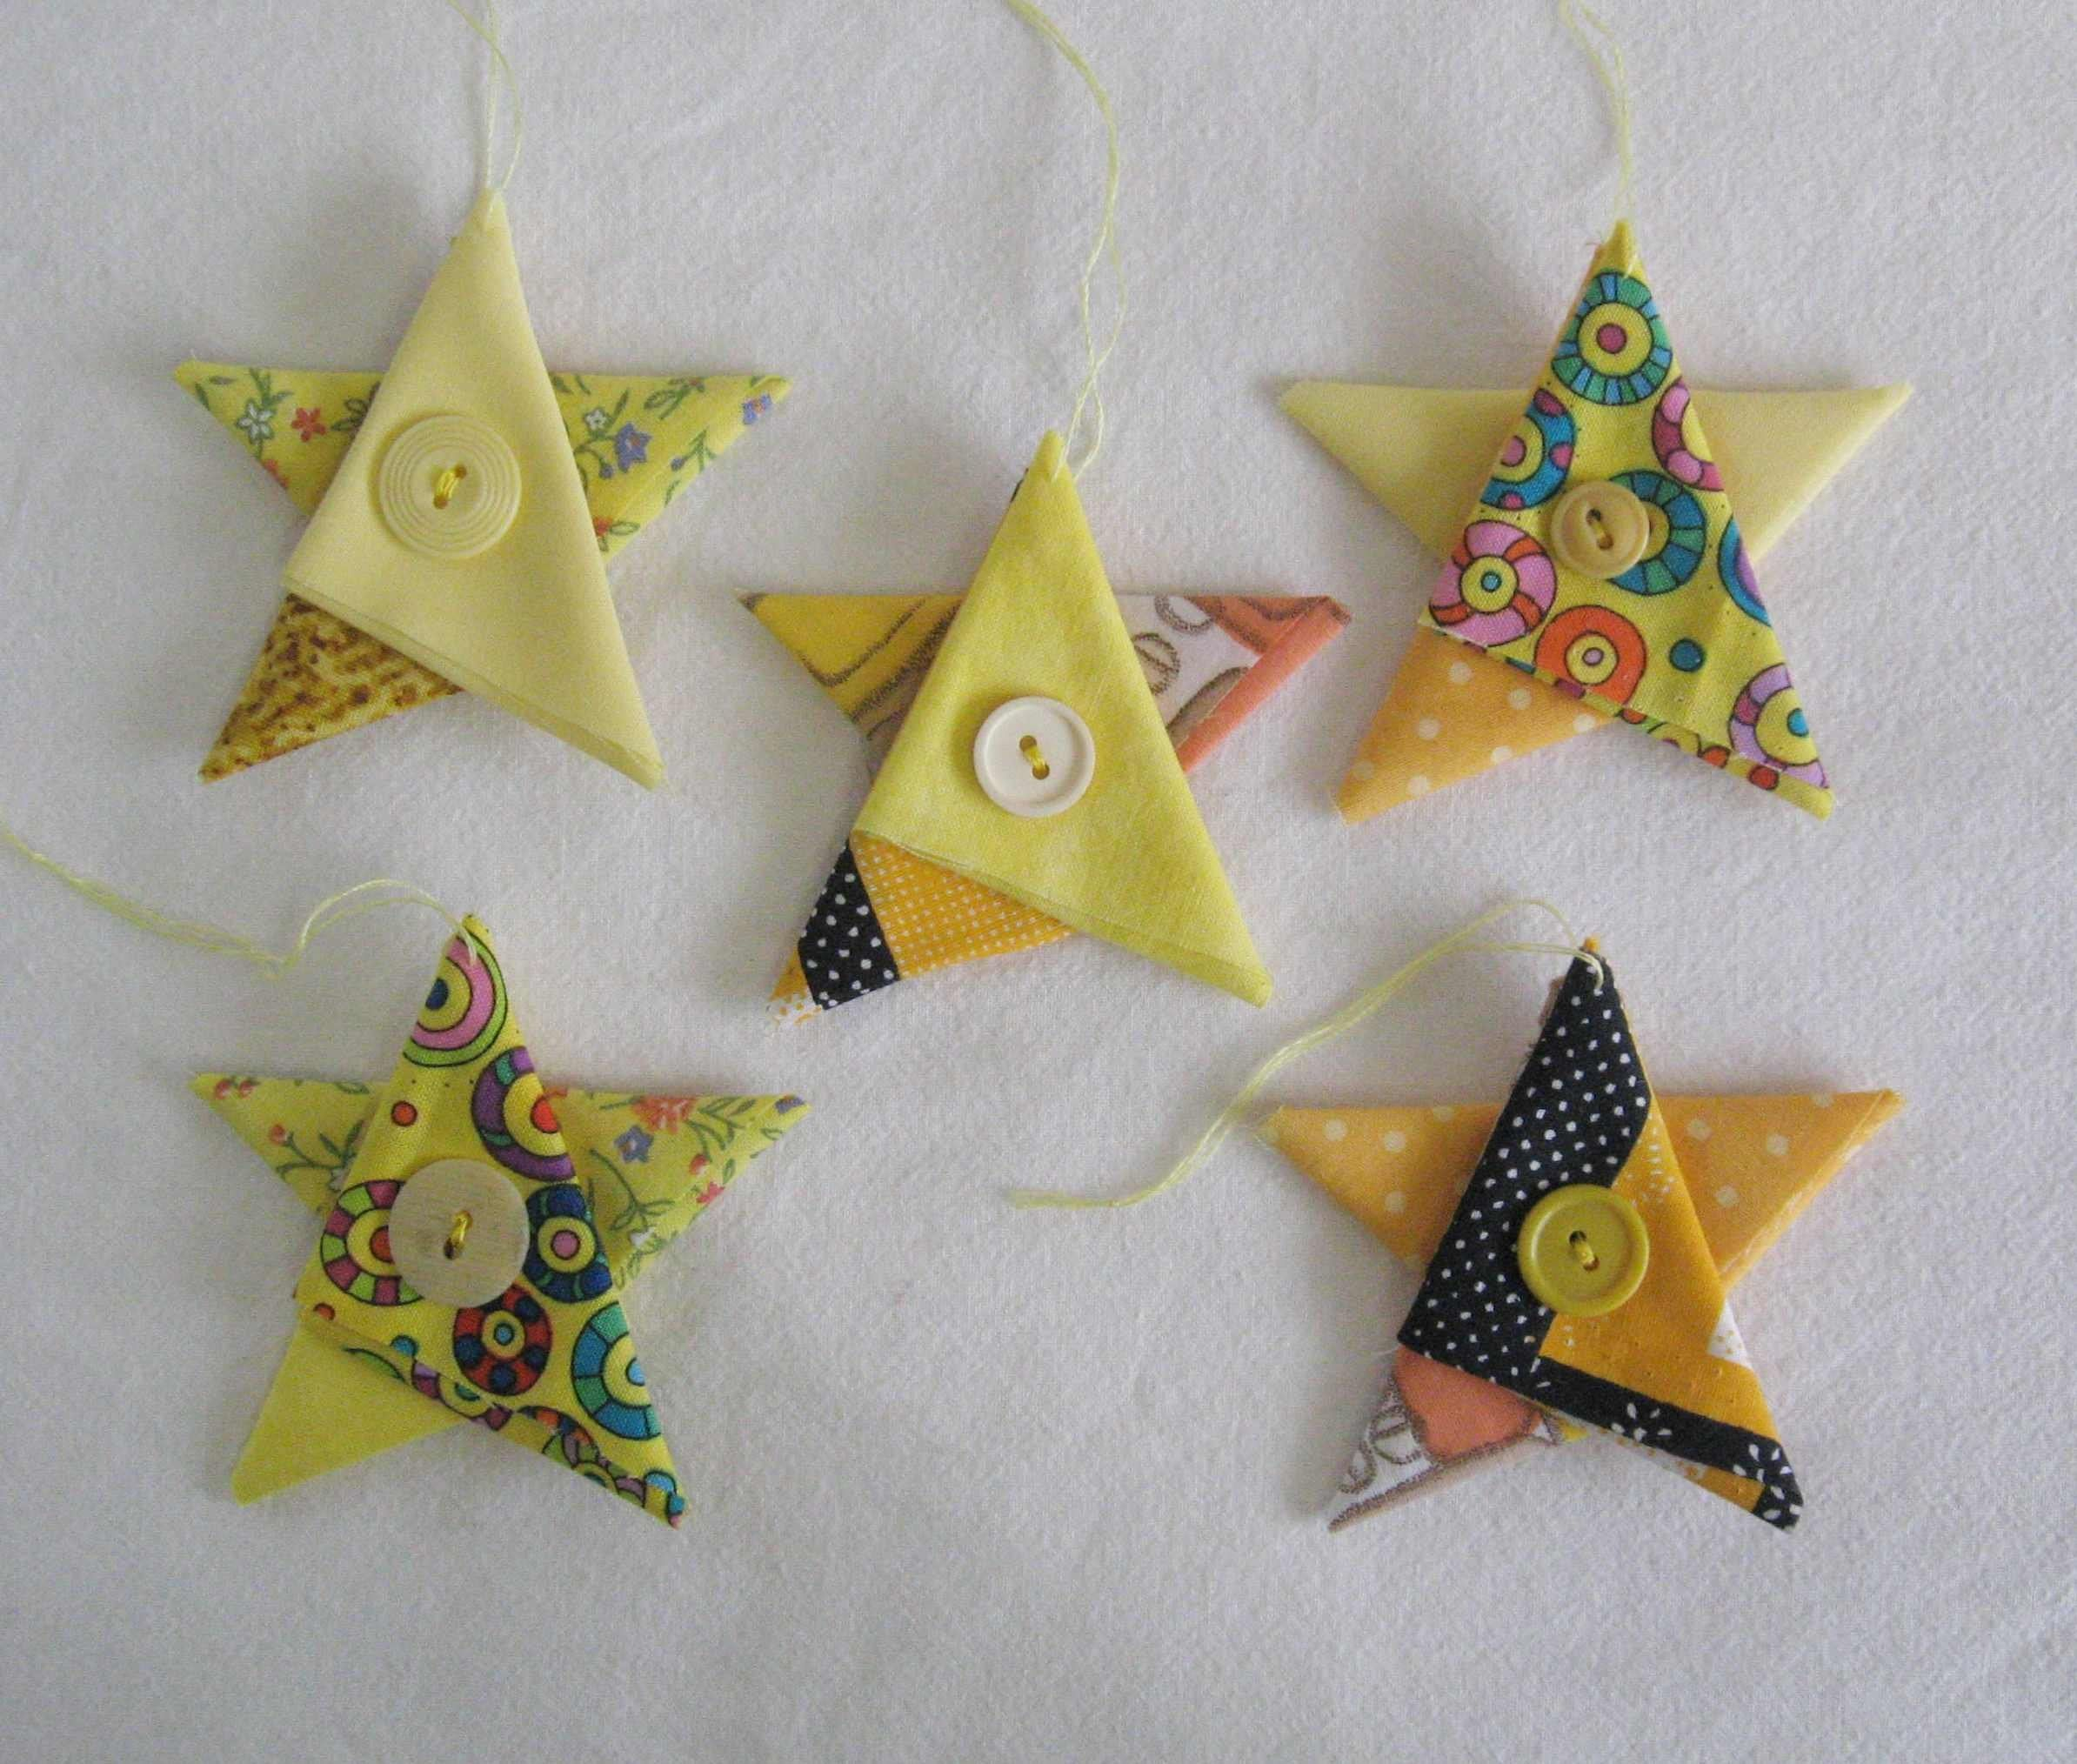 Yellow Star Ornaments Christmas Ornaments Fabric Star Country Cottage Christmas Decor Christmas Star Yellow Tree Decorations Fabric Stars Christmas Fabric Cottage Christmas